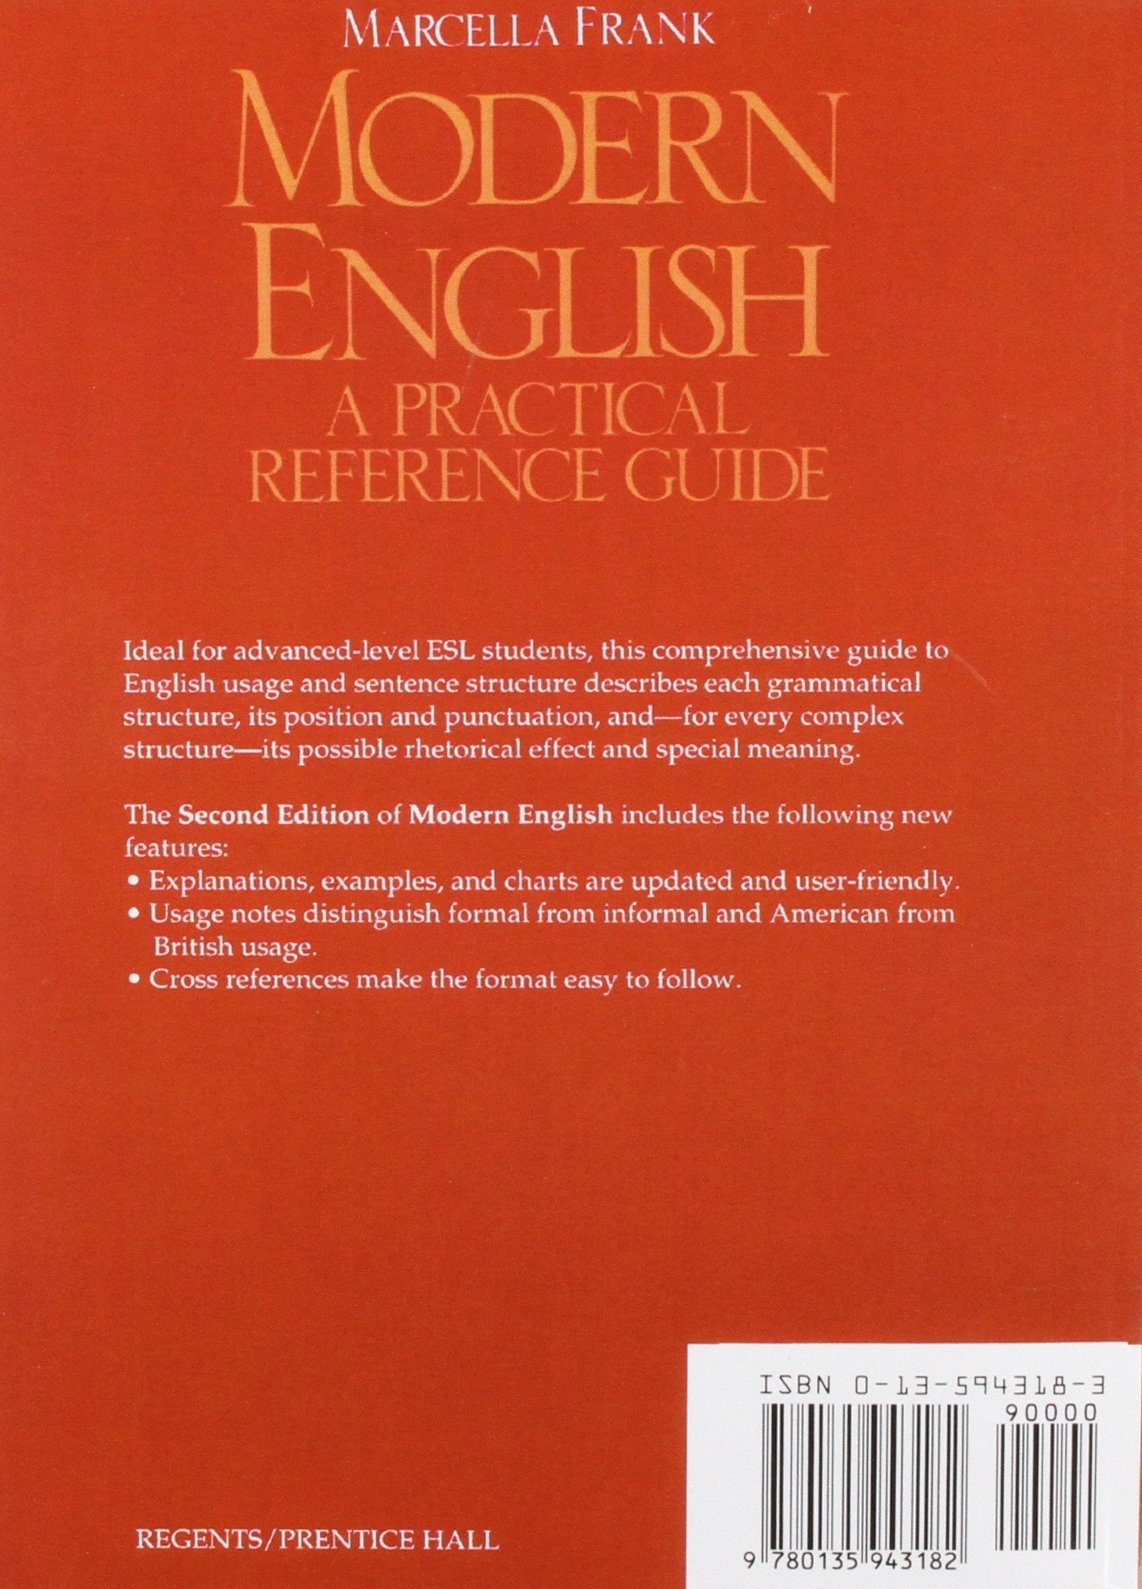 Modern english;: a practical reference guide: marcella frank.